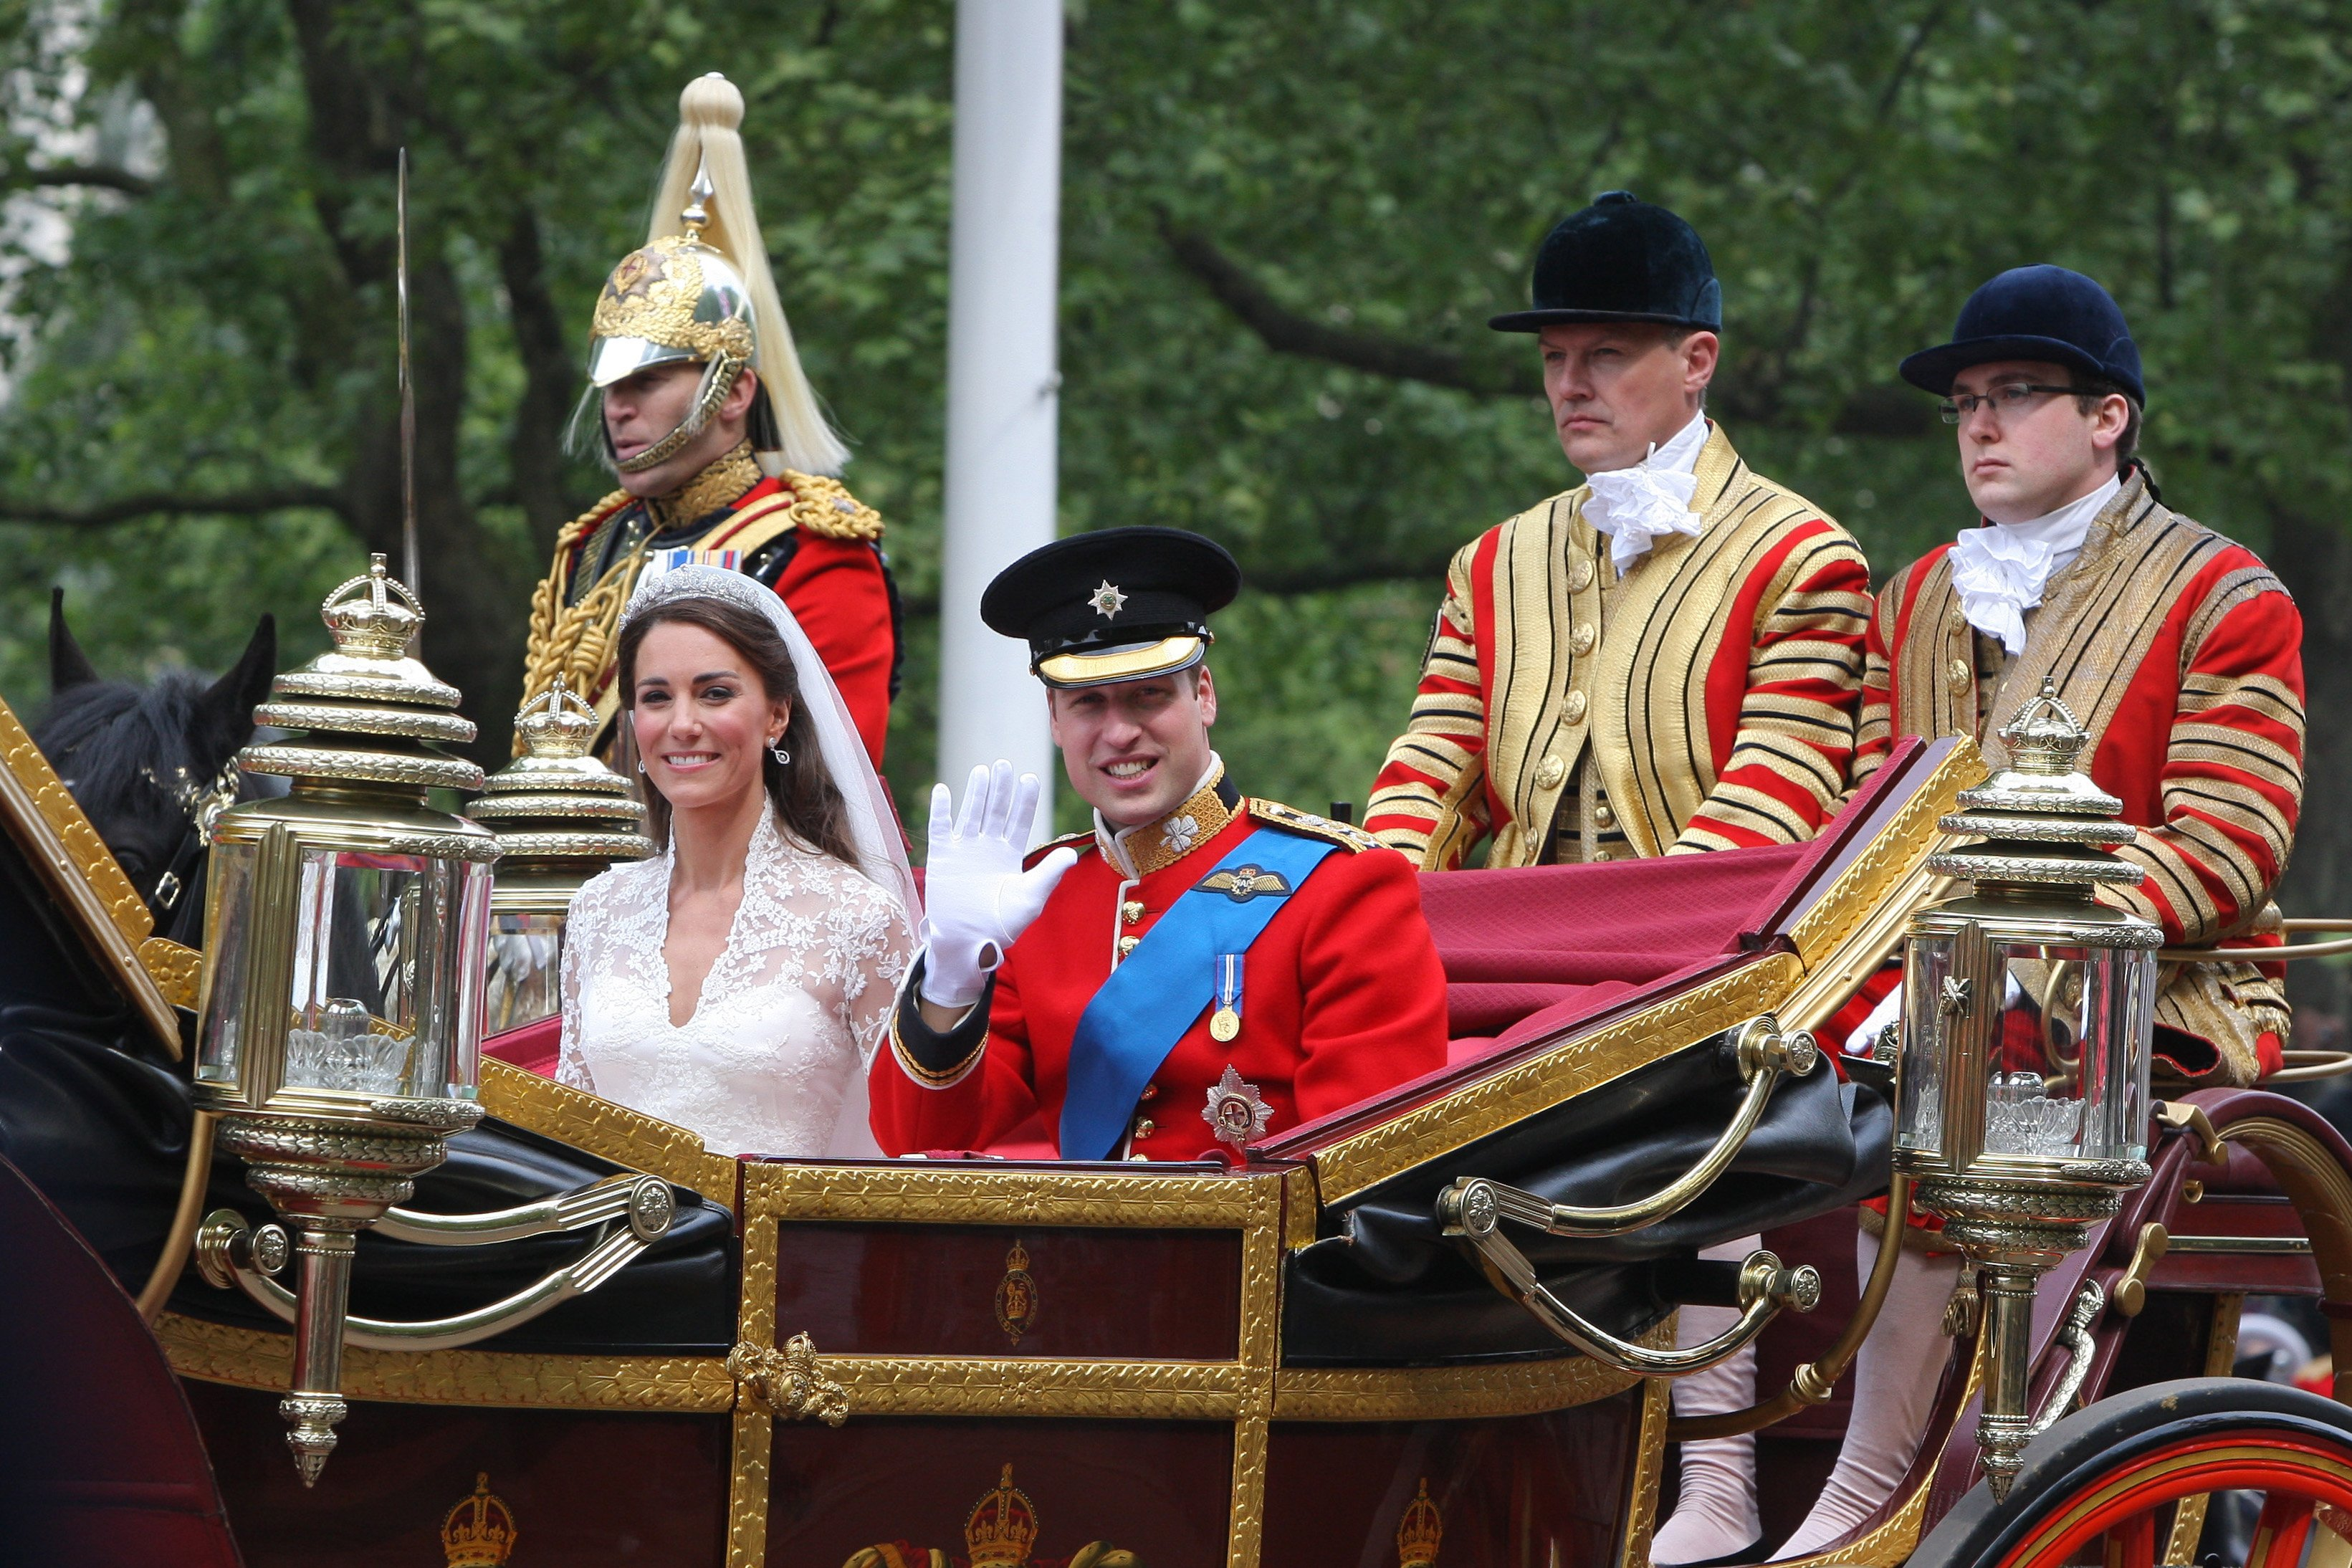 Boda real del príncipe William y Catherine Middleton, el 29 de abril de 2011 en la abadía de Westminster en Londres, Inglaterra. | Foto: Getty Images